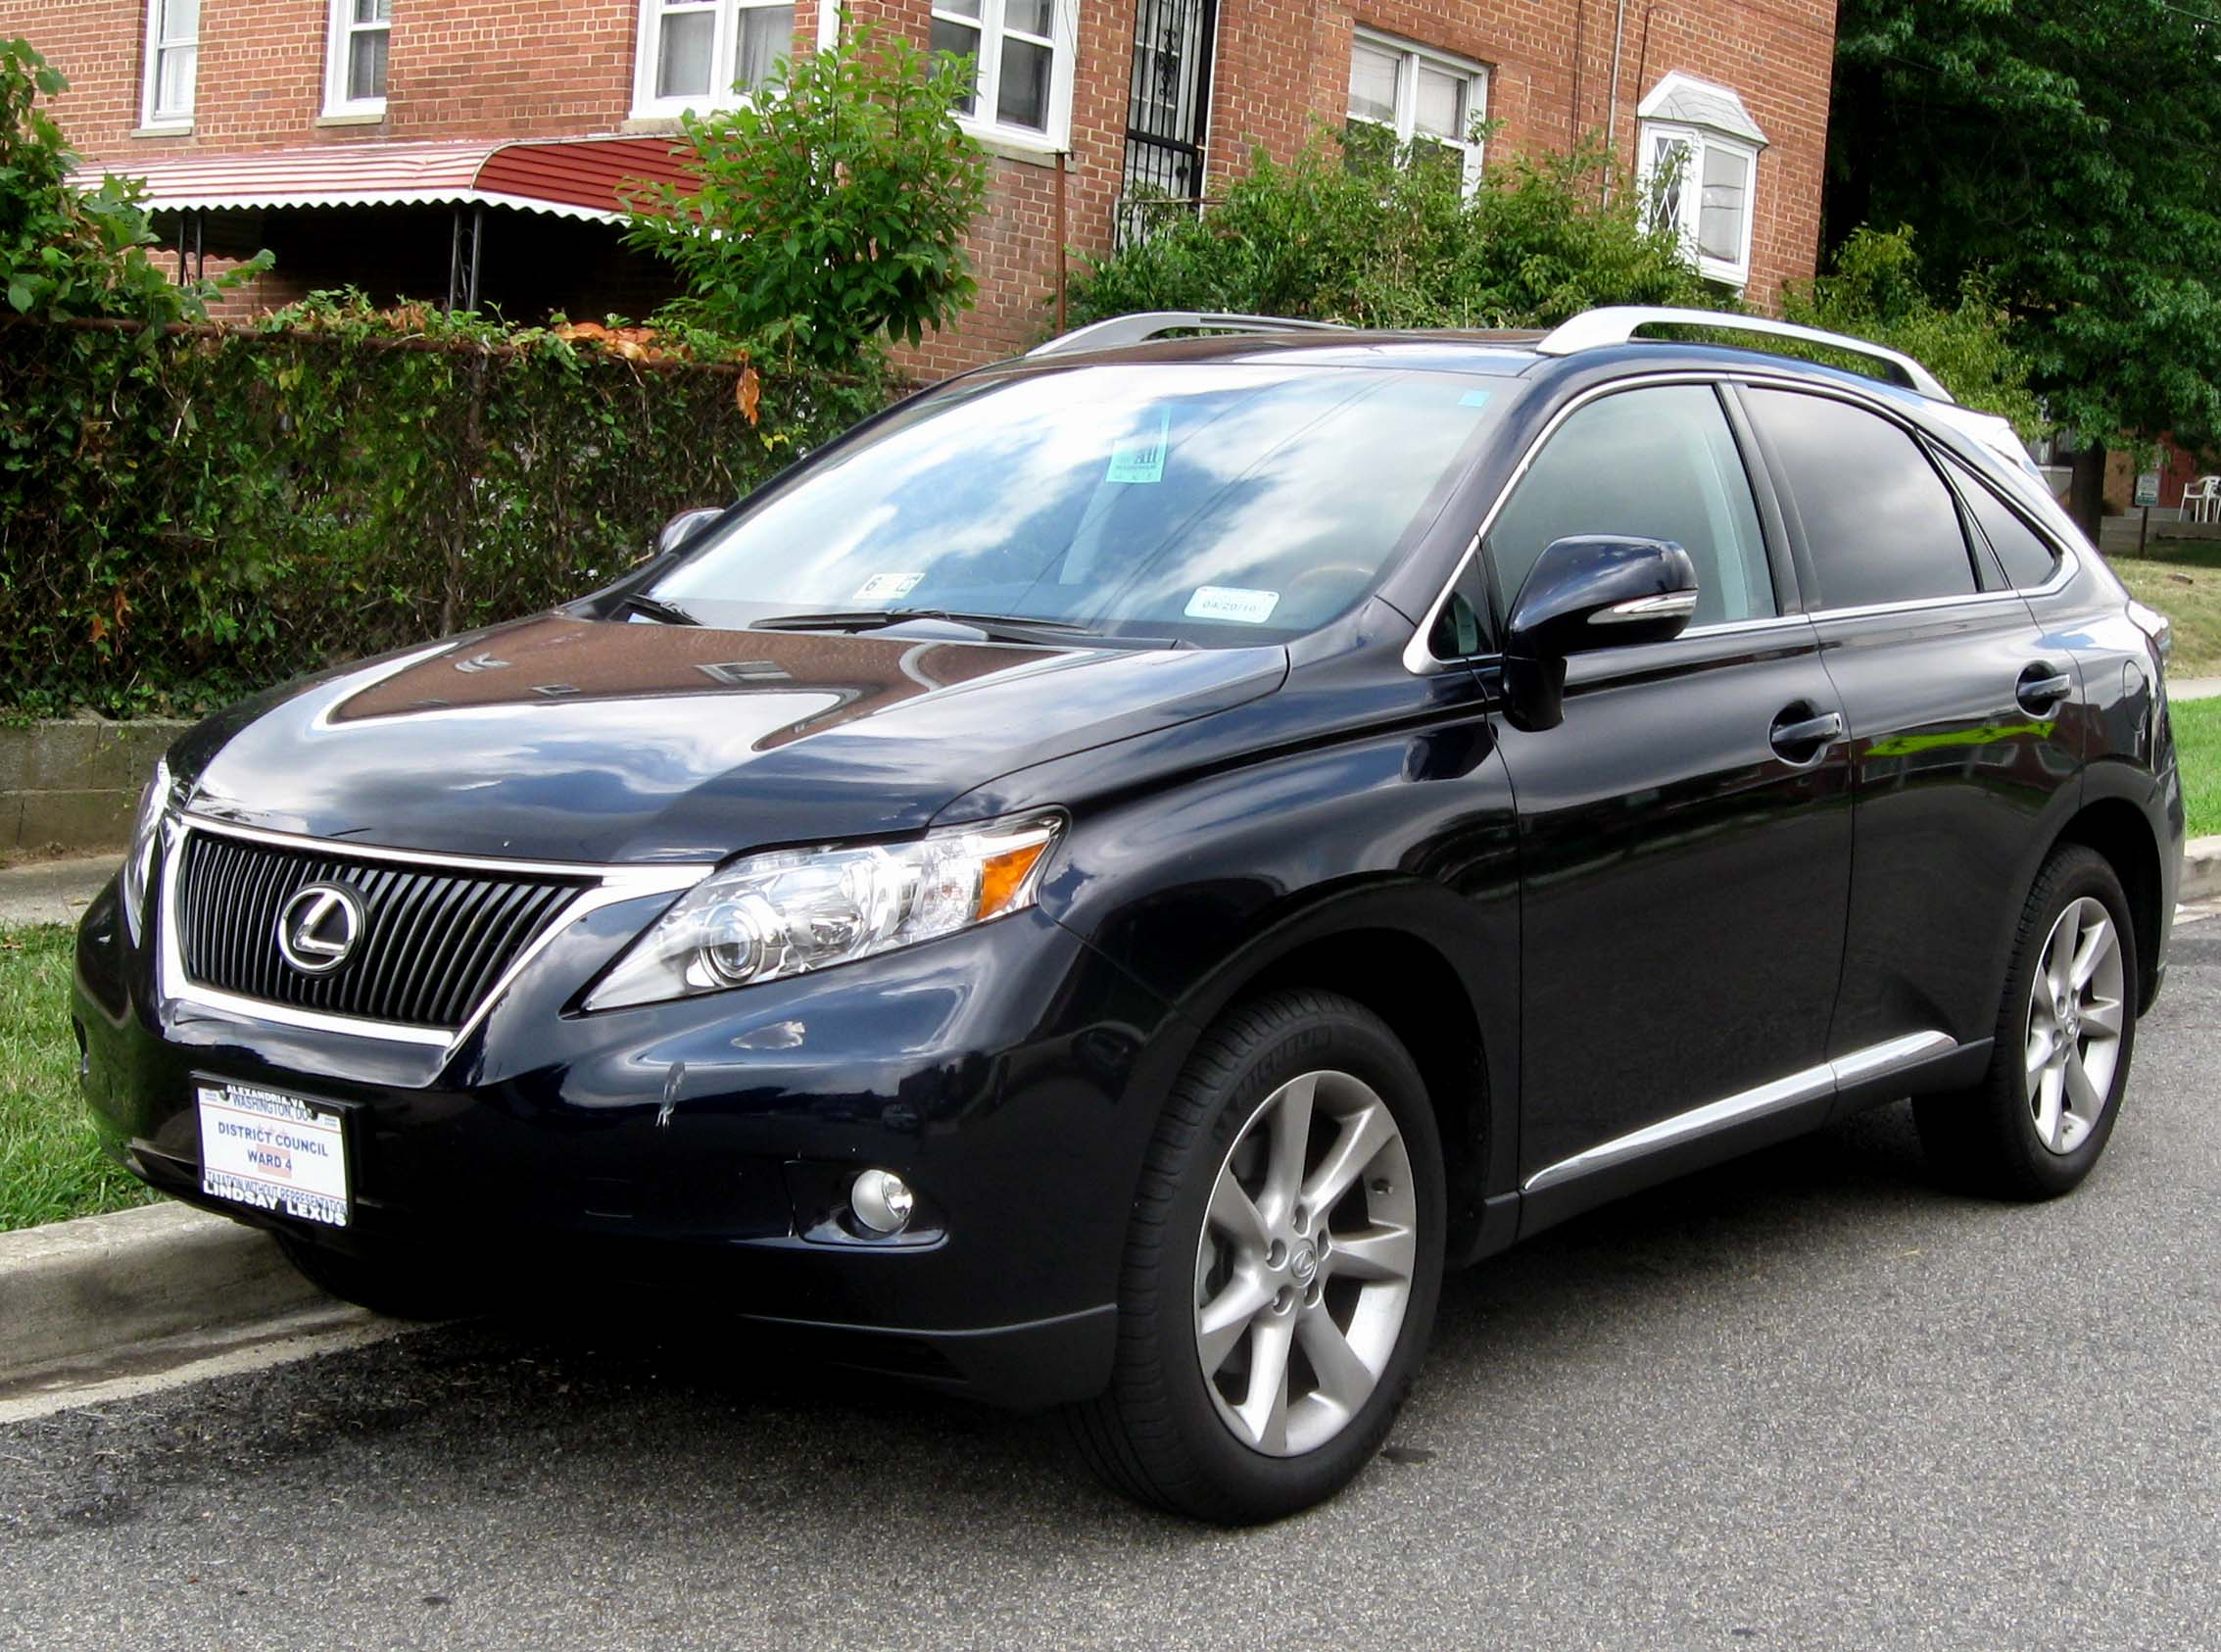 File:2010 Lexus RX350 1 -- 08-14-2009.jpg - Wikimedia Commons